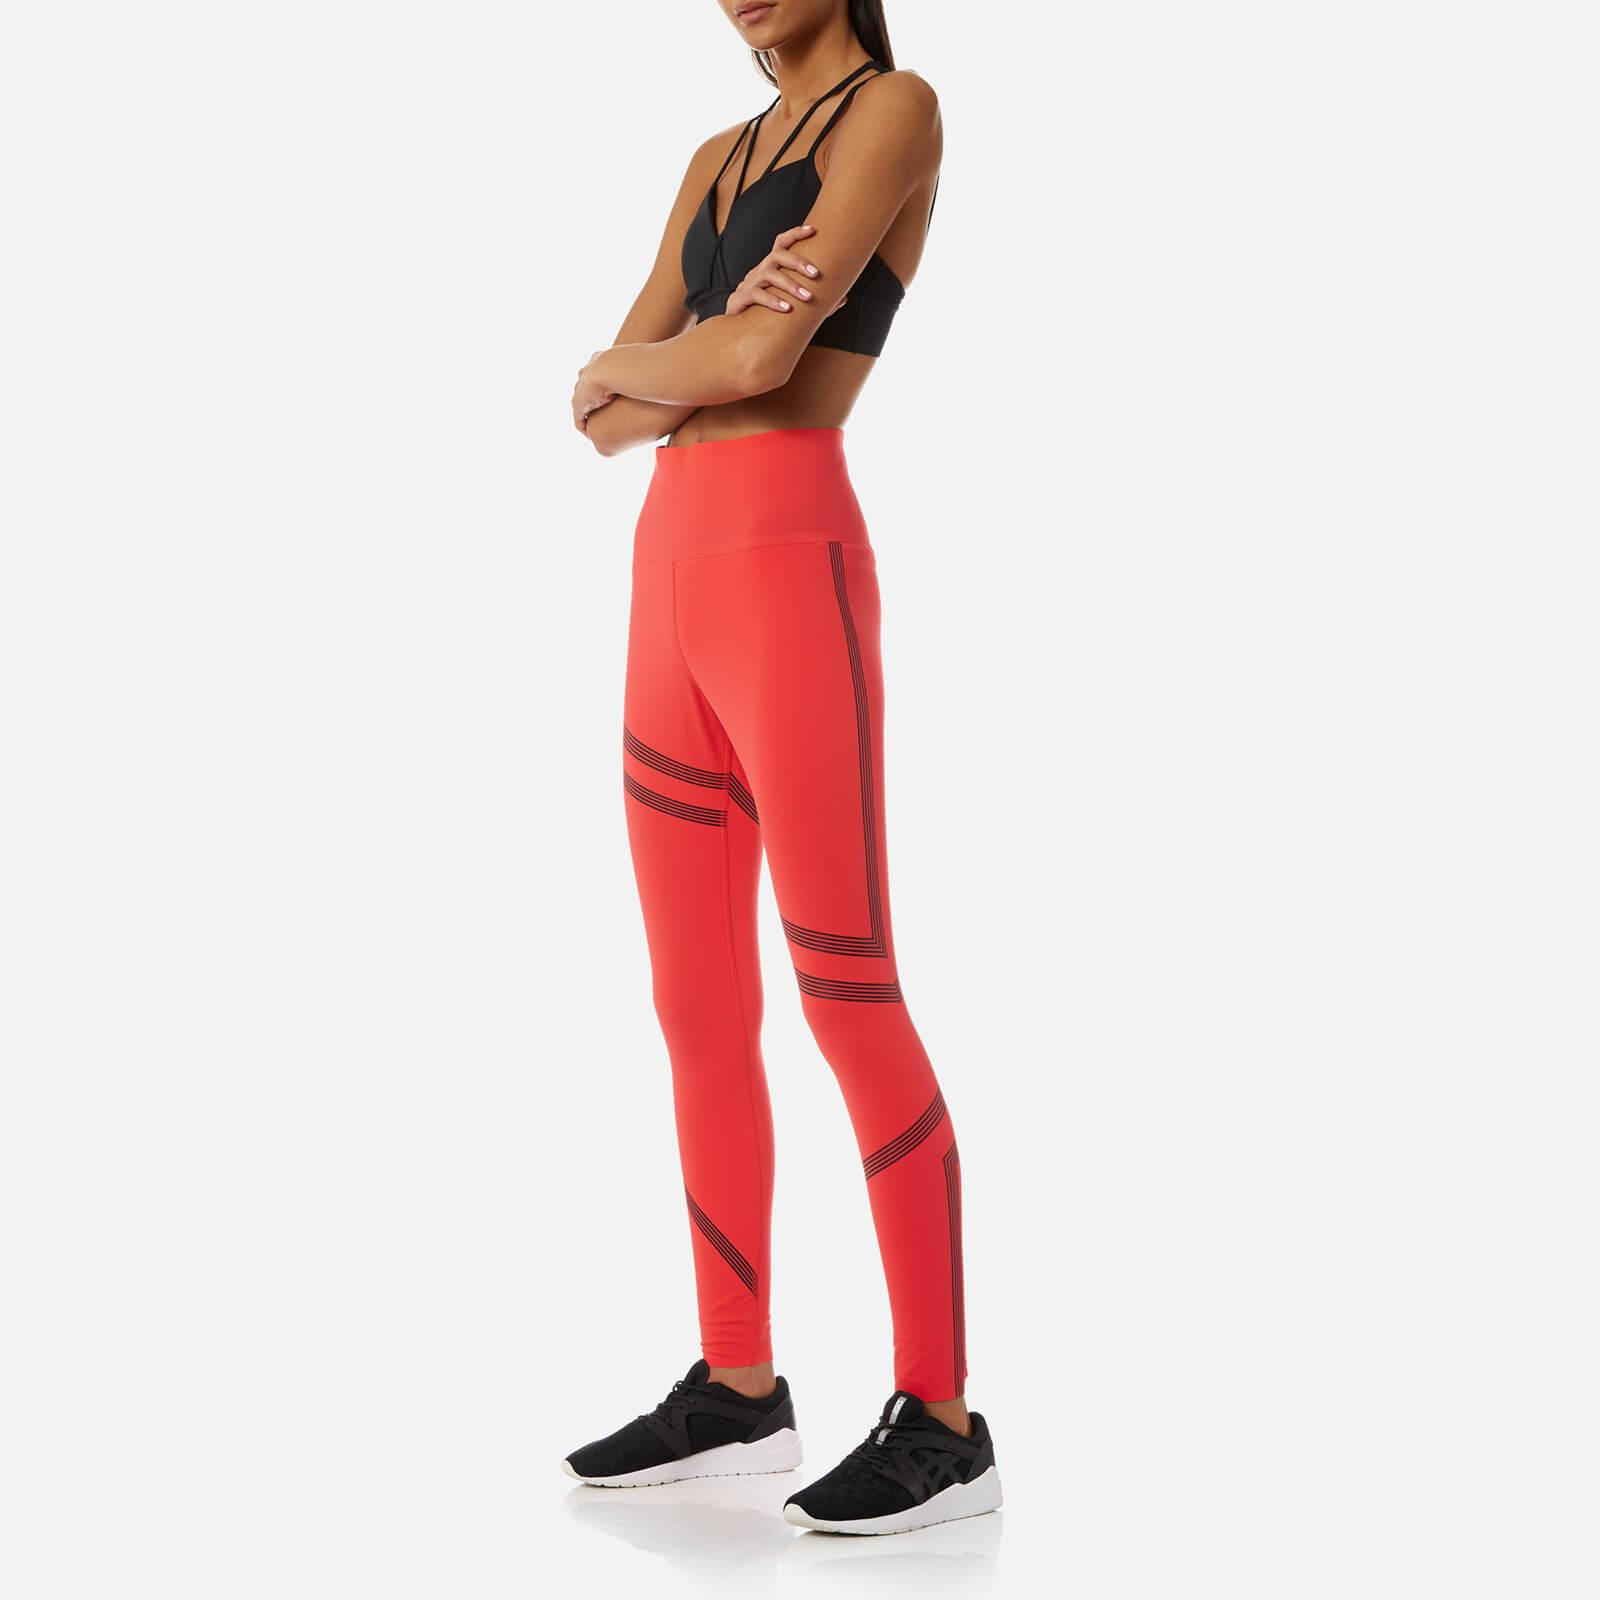 acacbb76de12e ... Reebok - Red Linear High Rise Tights - Lyst · Visit The Hut. Tap to  visit site